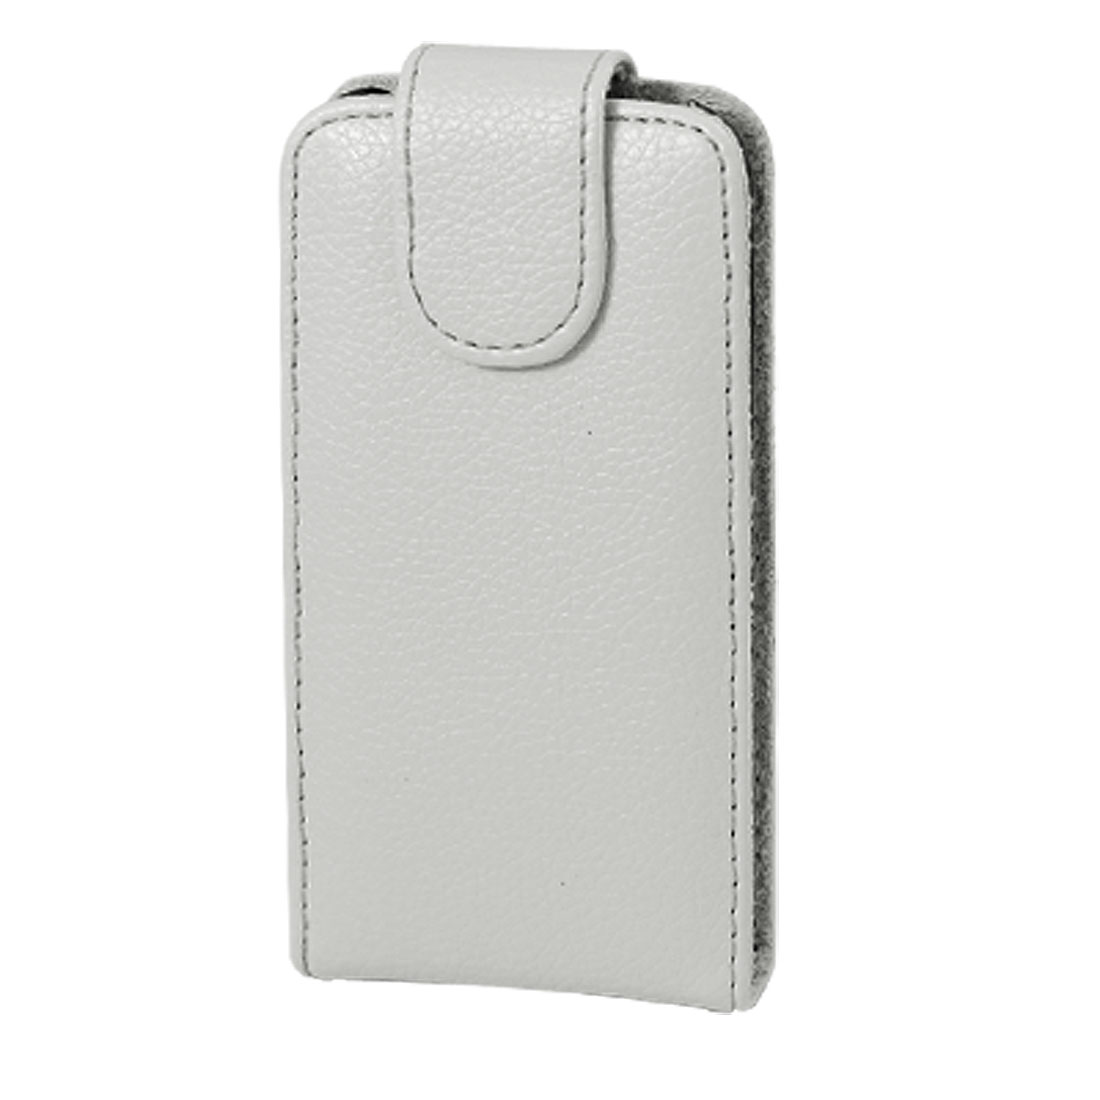 Ash Gray Textured Faux Leather Magnetic Clip Pouch Case for iPhone 3G